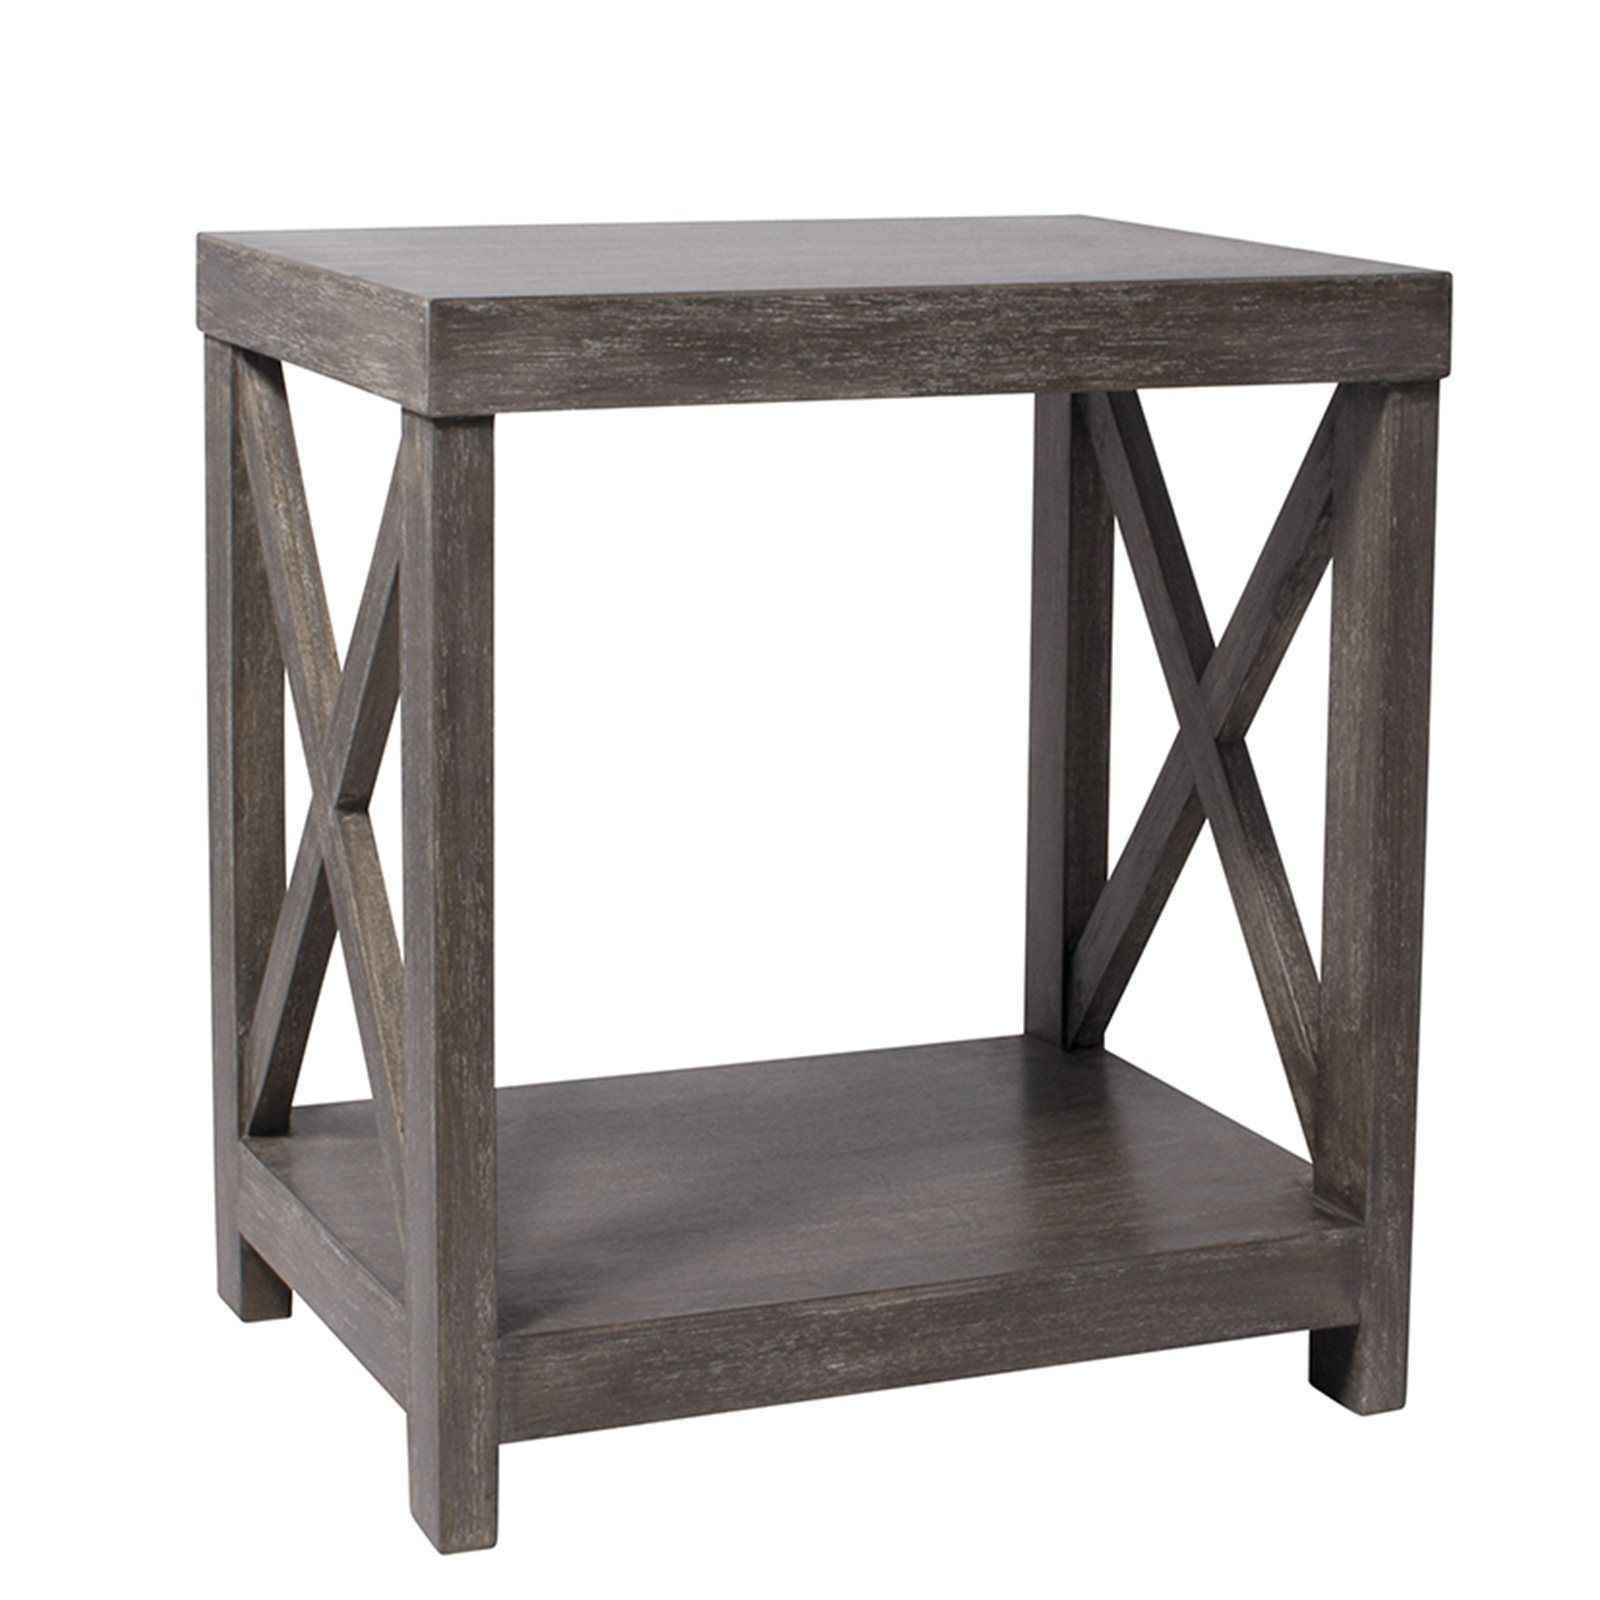 HICKS And HICKS Weathered Vintage Country Style Side Table   This Lovely  Washed Weathered Country Style